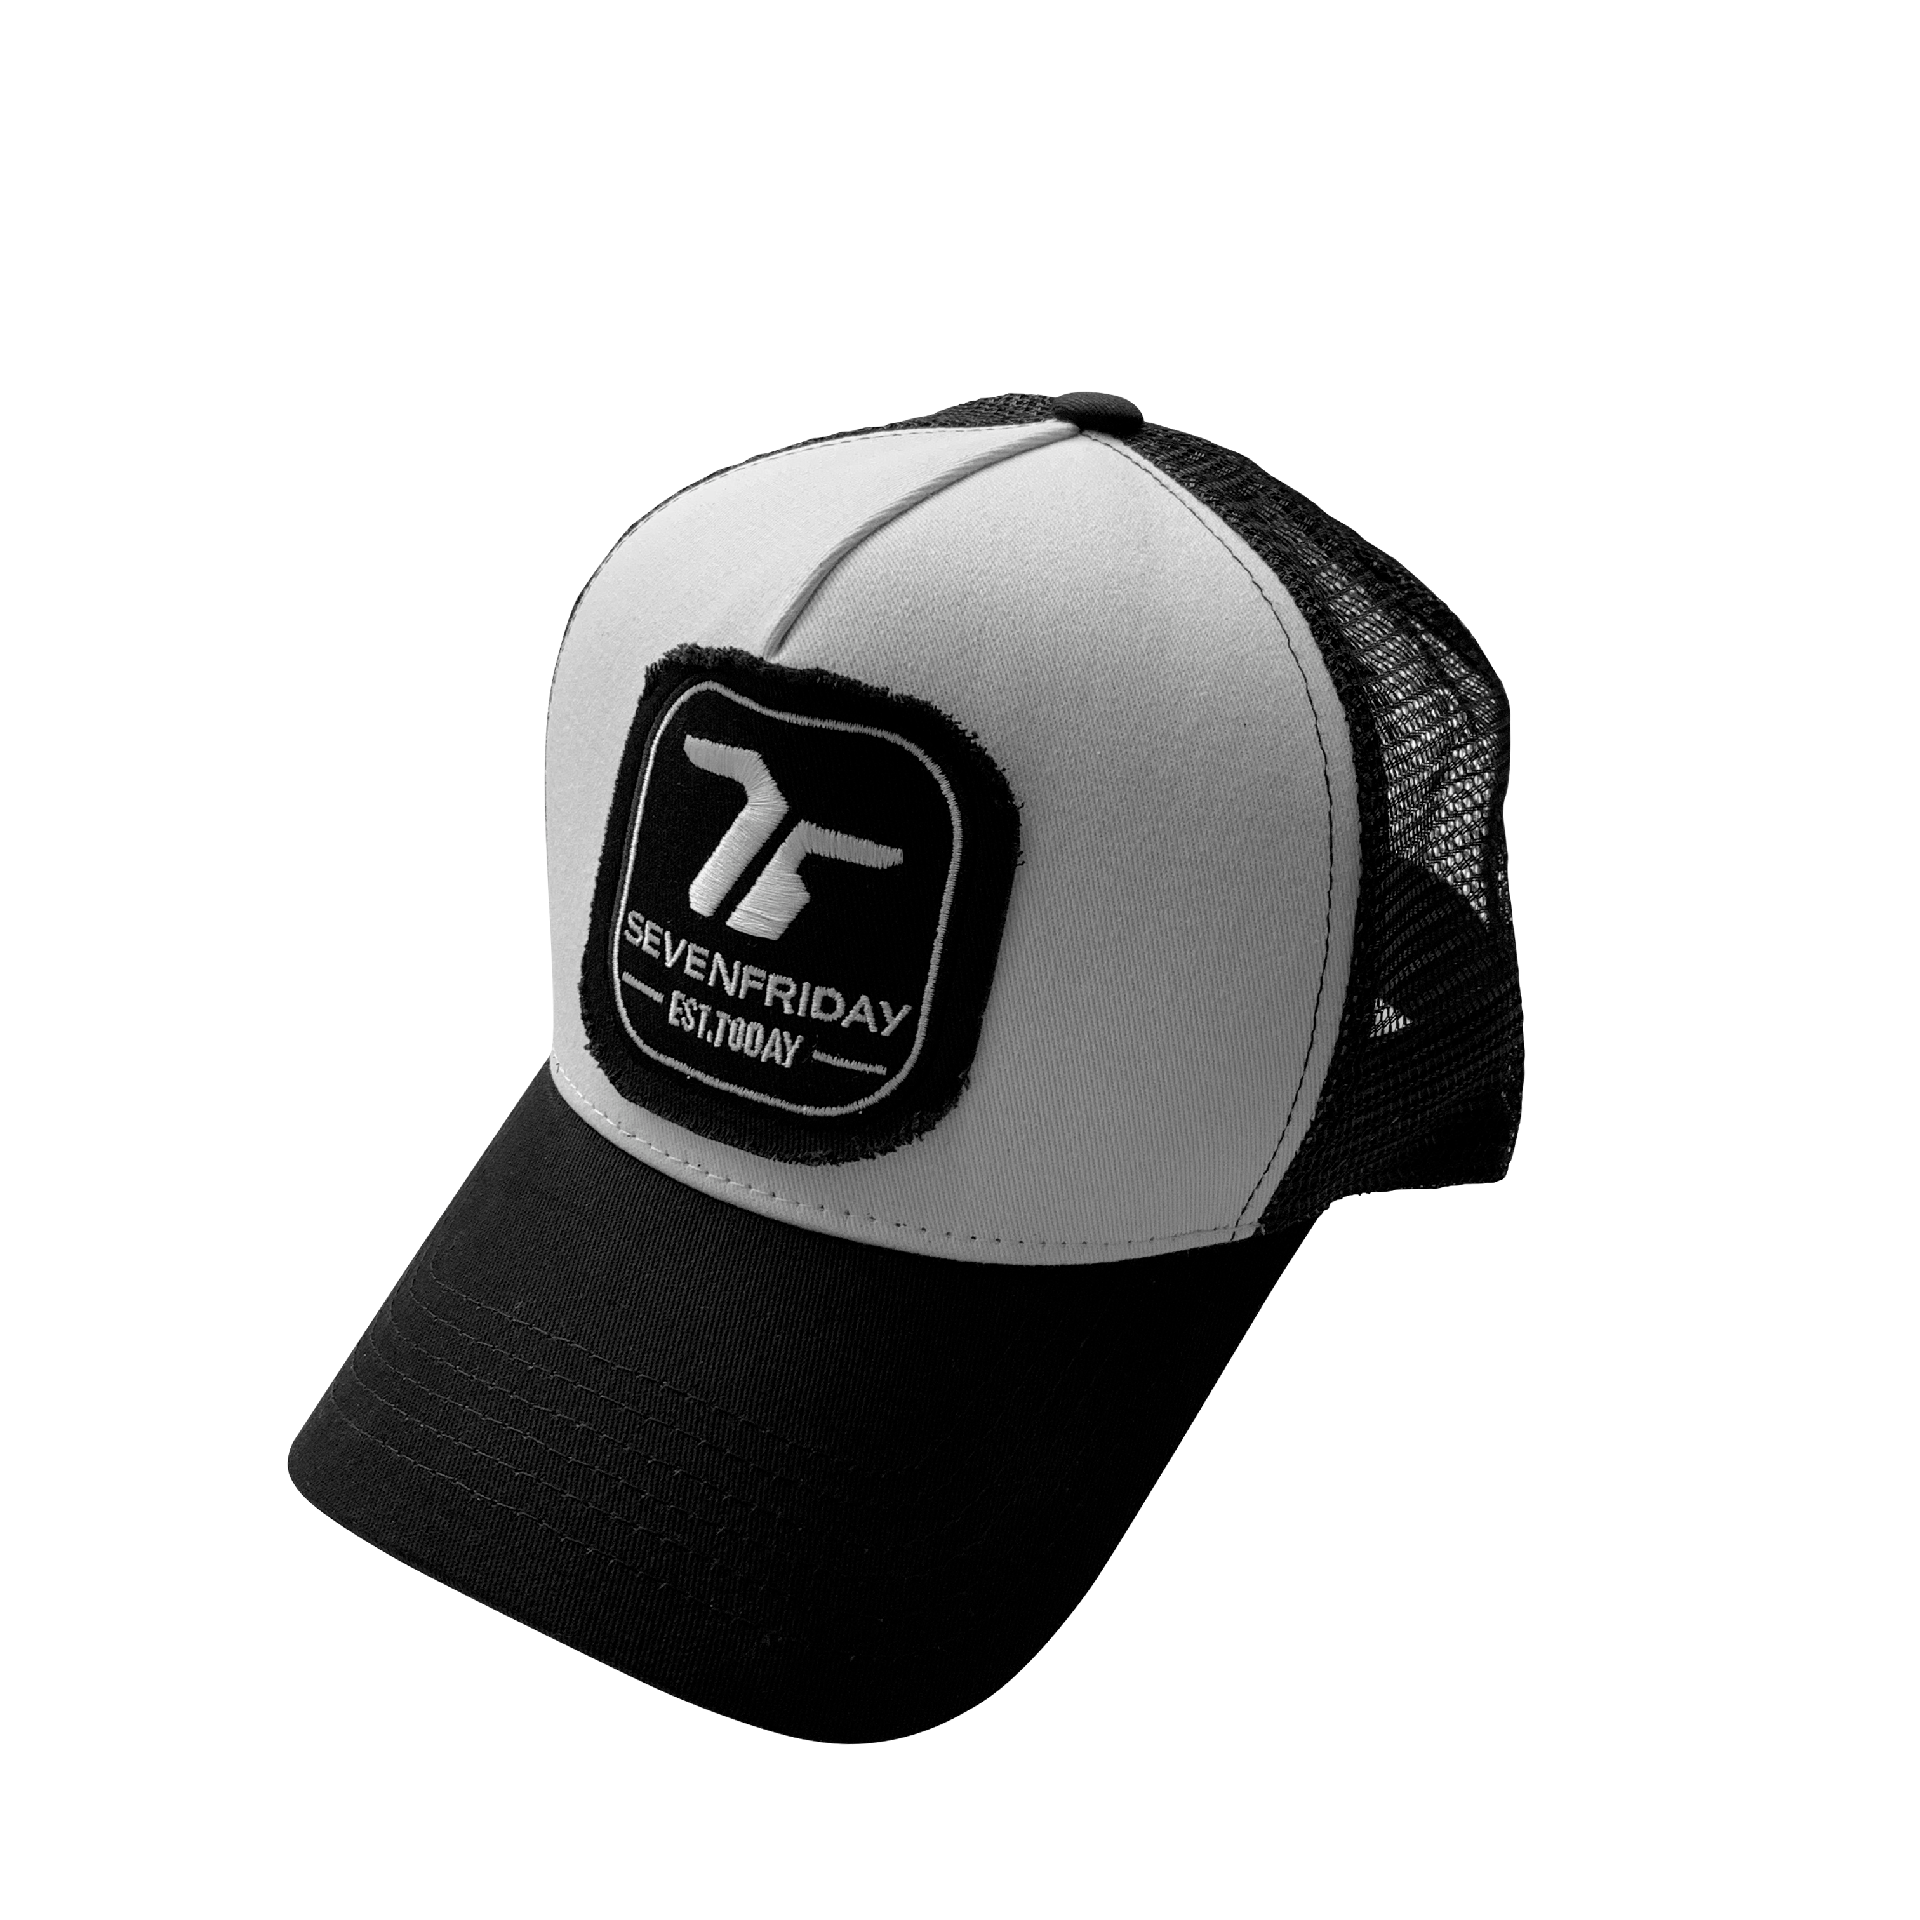 SEVENFRIDAY  Cap, Black